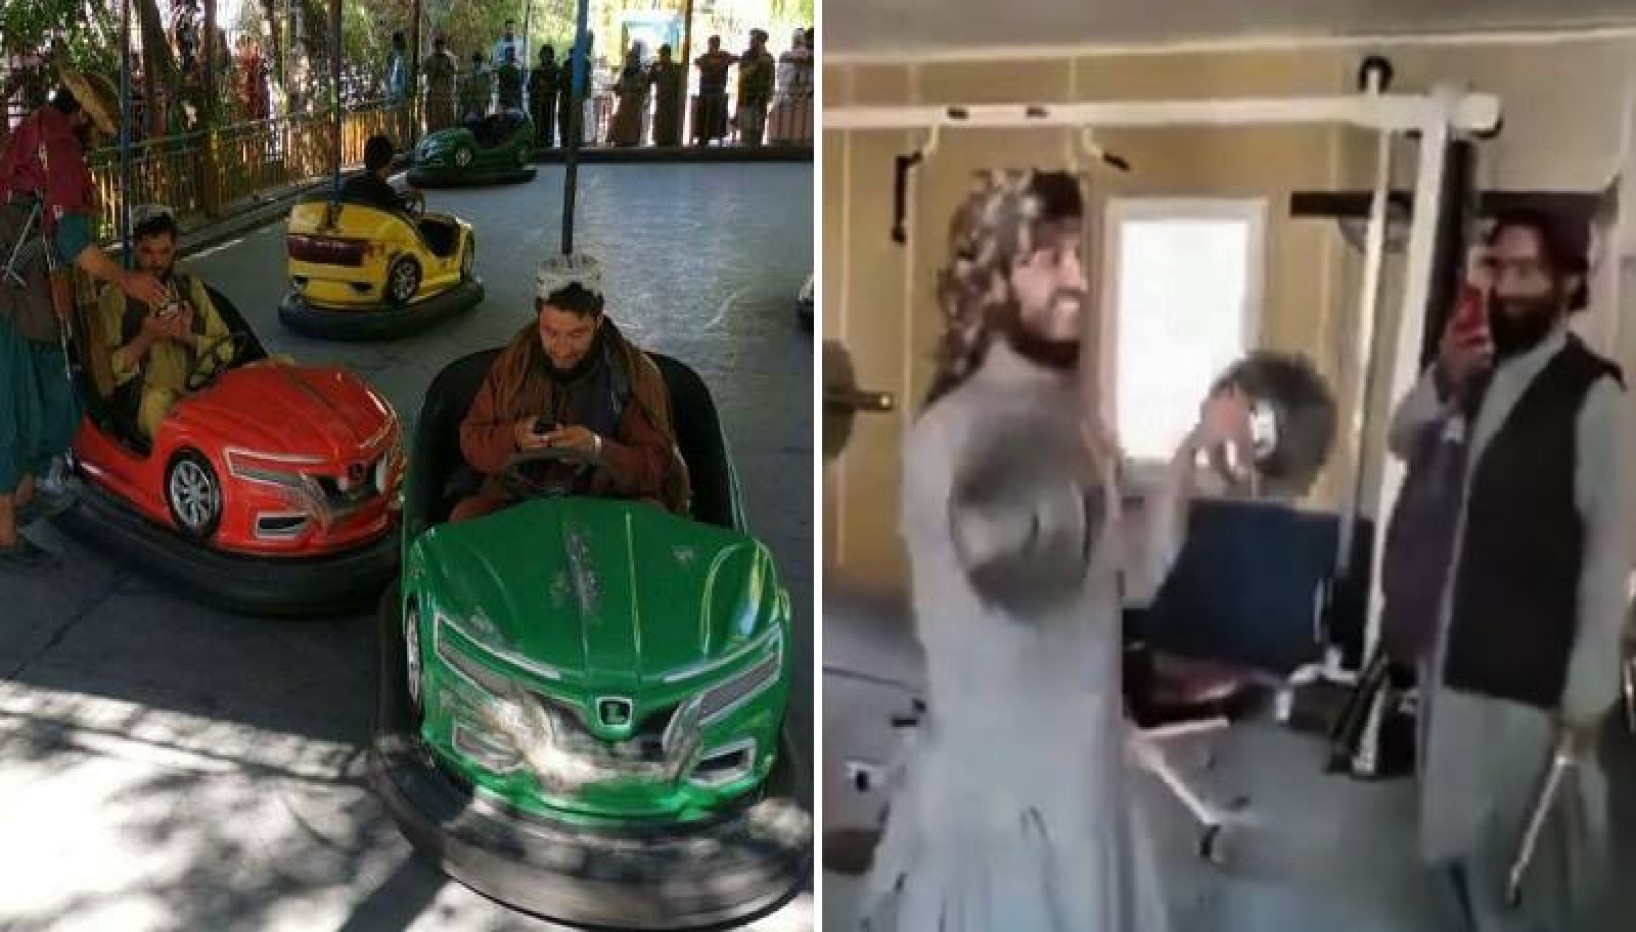 Talibans Show Their Softer Sides At Amusement Park And Gyms After Taking Over Afghanistan